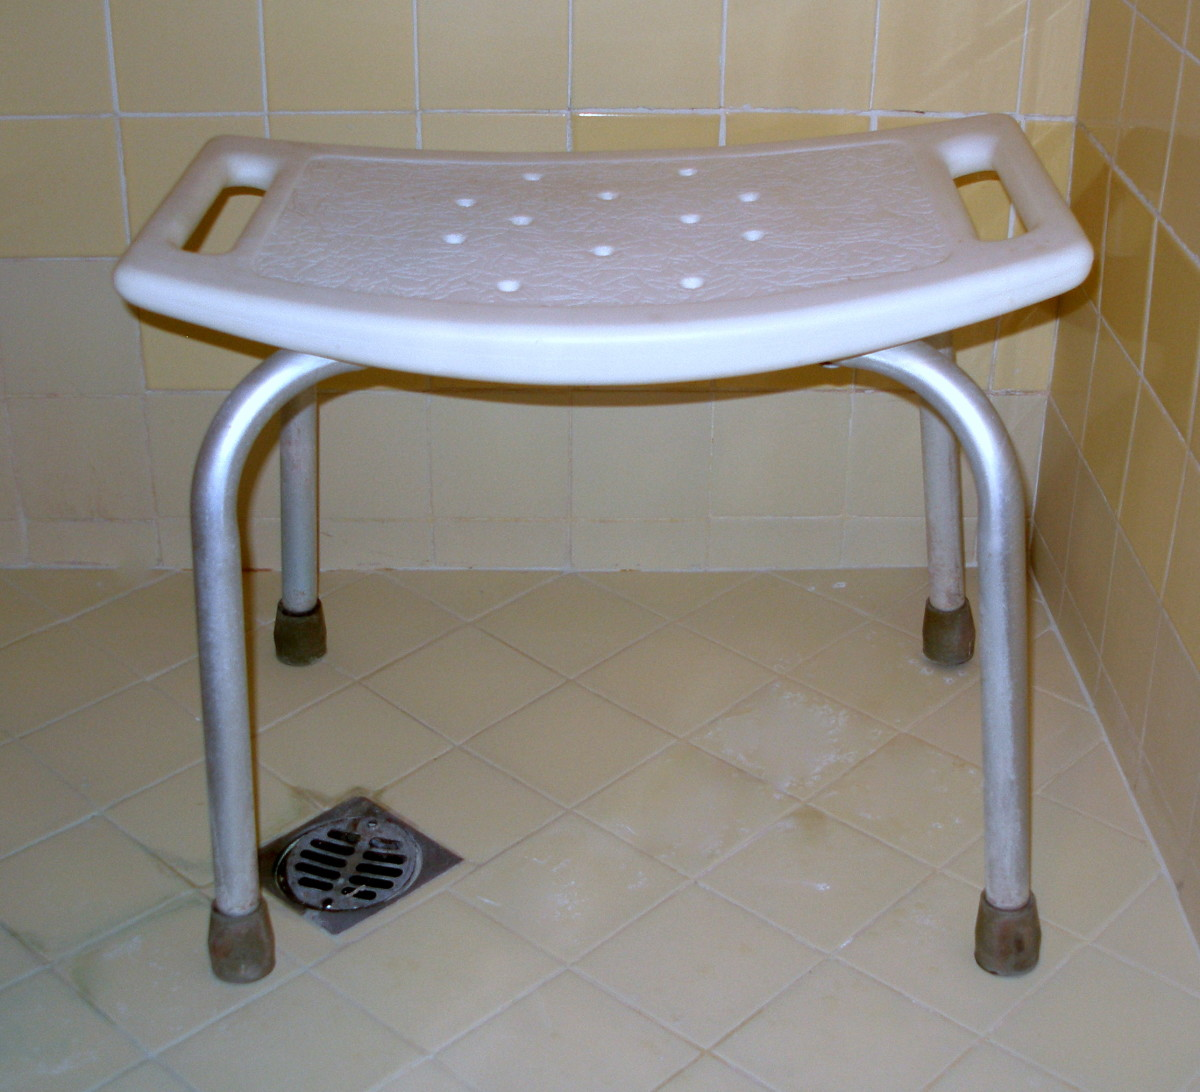 A basic shower seat